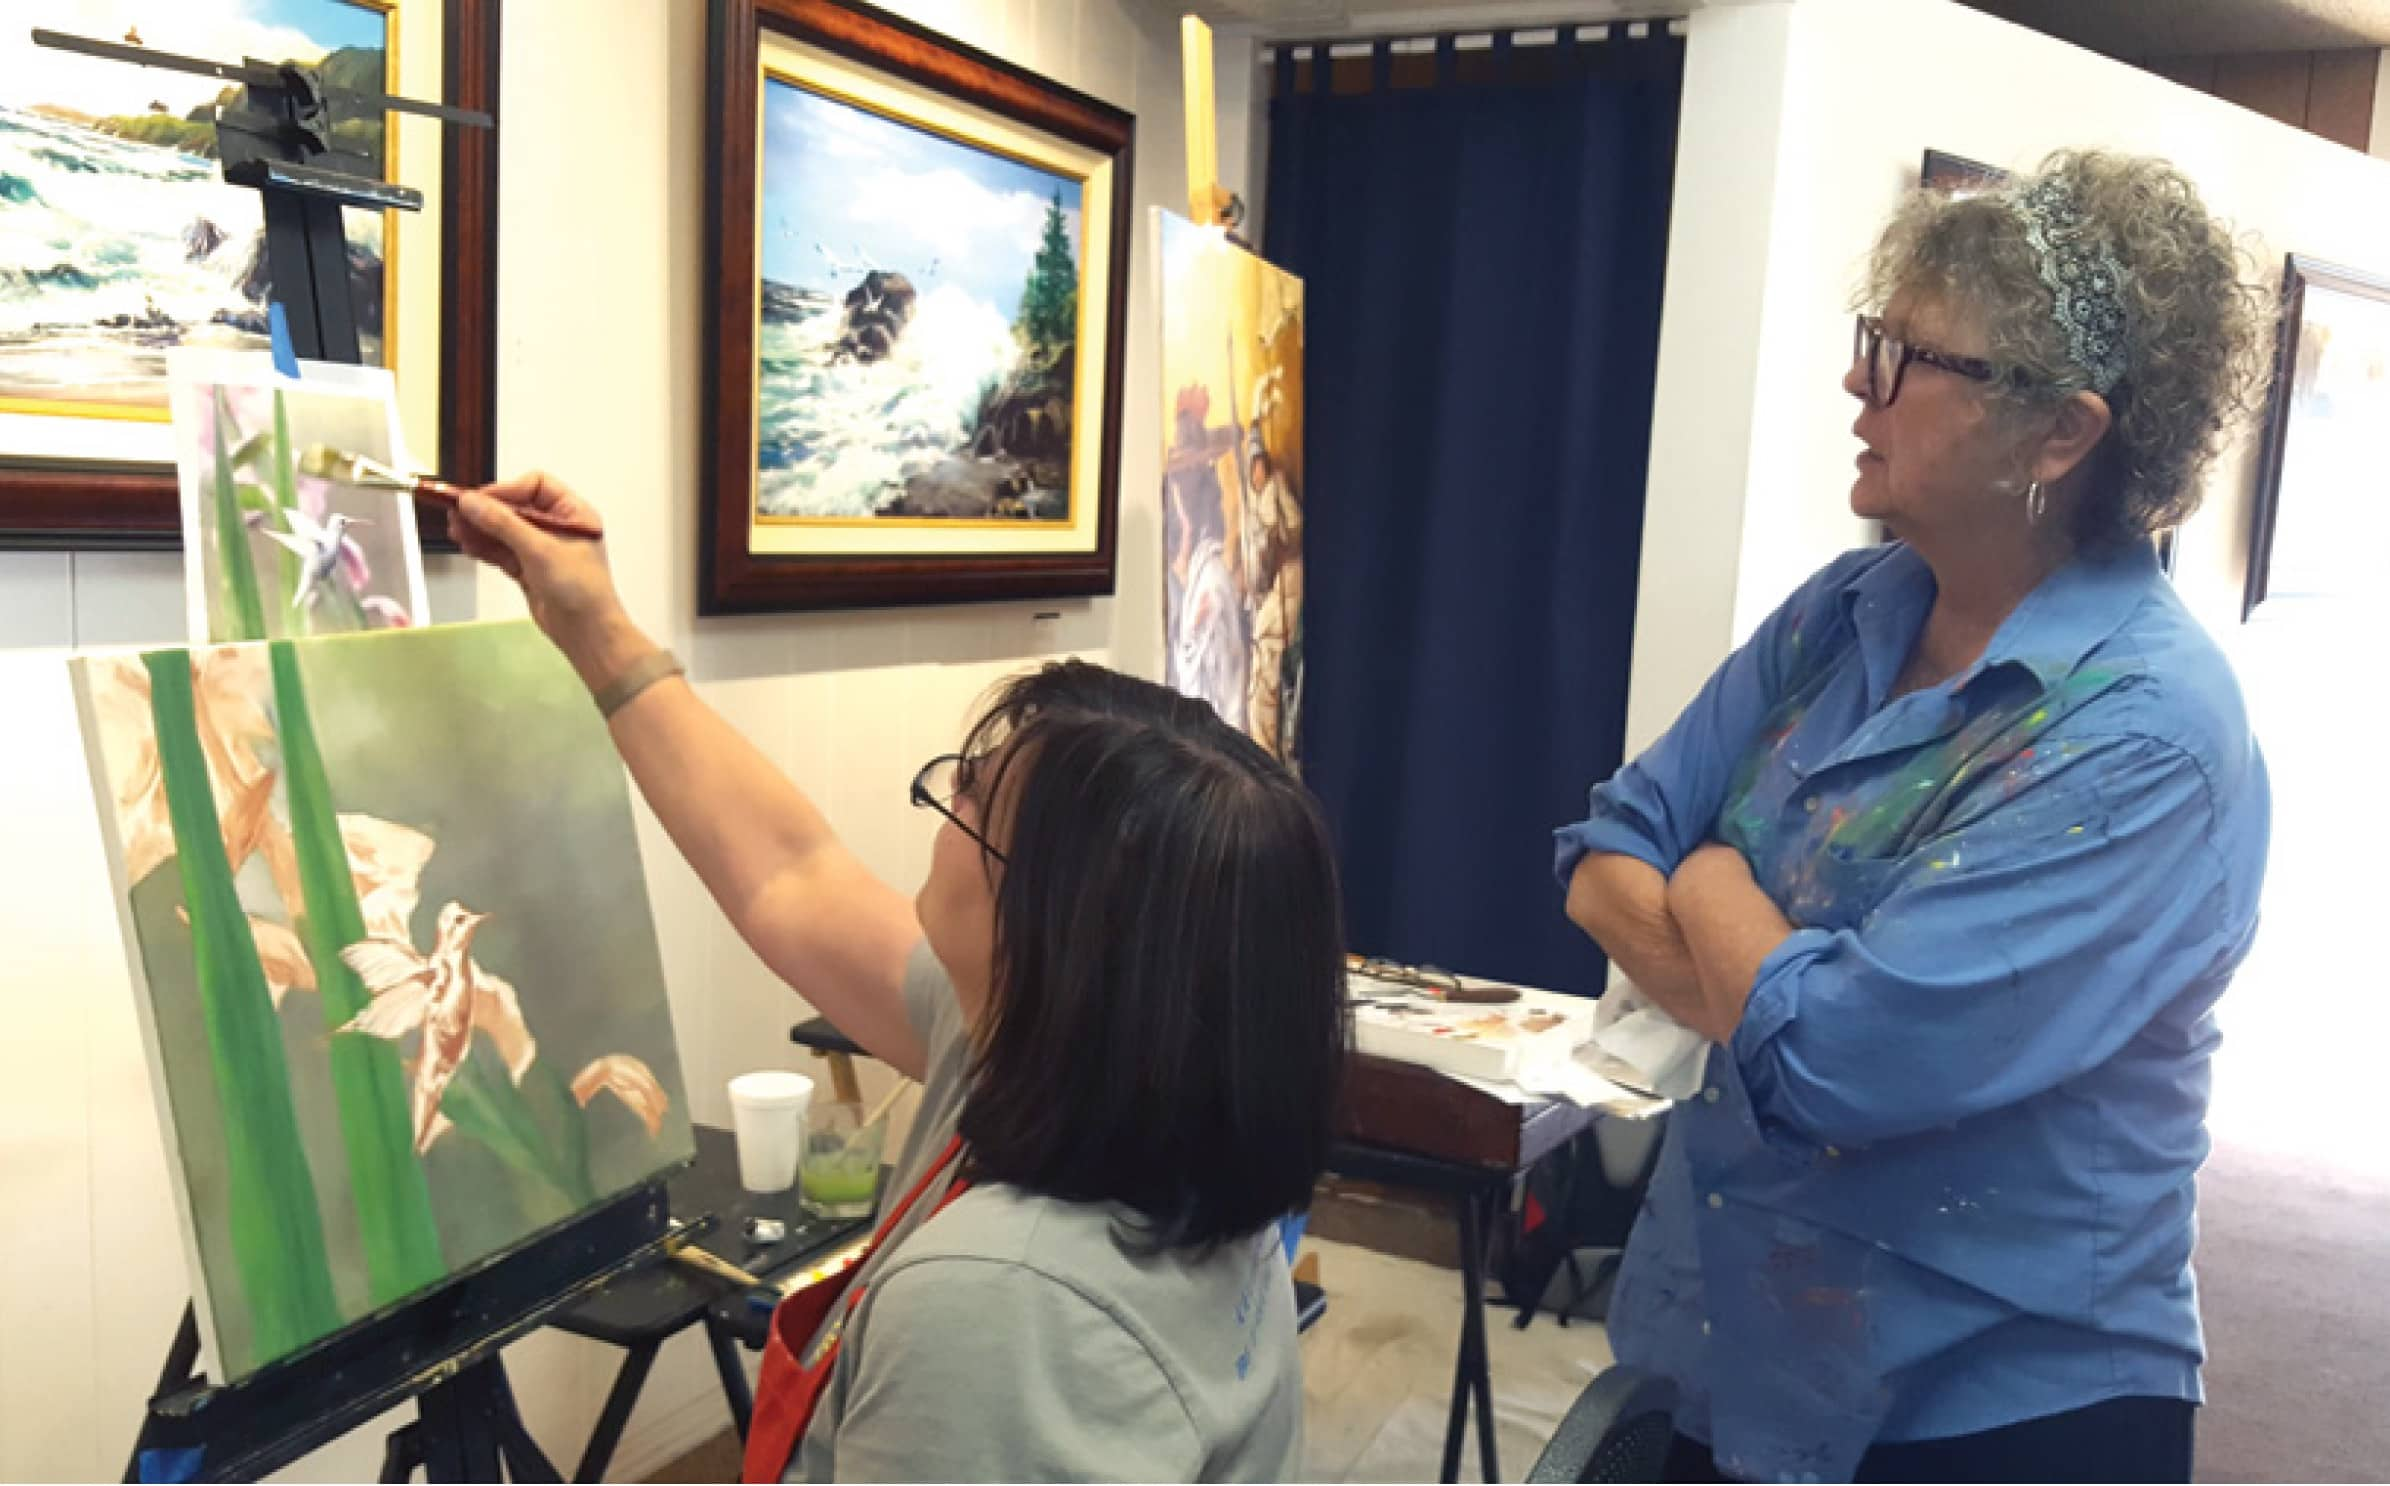 Photo of artists working in Parkhurst Galleries San Pedro California